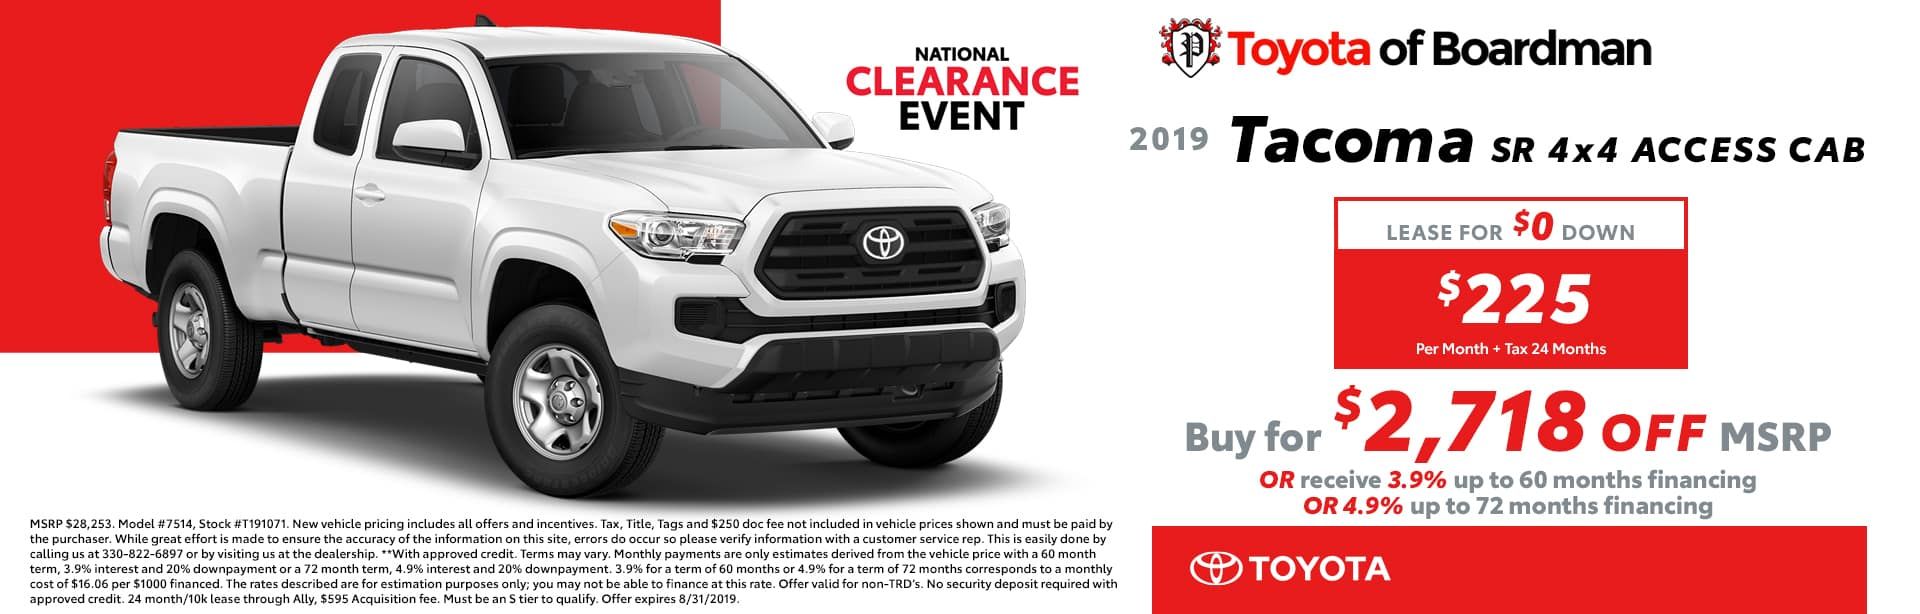 August special on the 2019 Toyota Tacoma